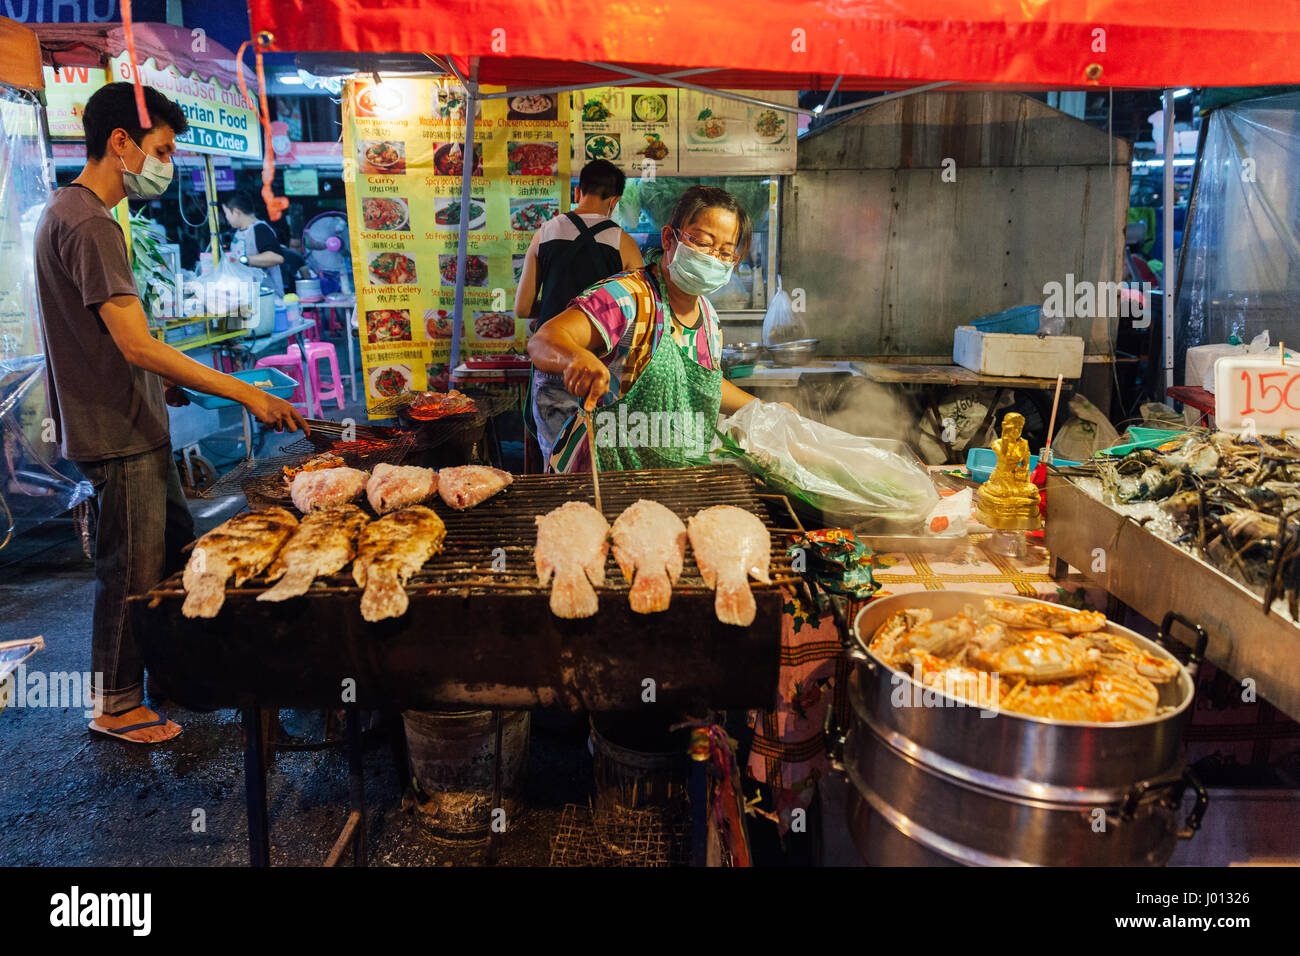 Chiang Mai, Thailand - August 27, 2016:  Thai woman cooks grilled fish at the Saturday Night Market on August 27, - Stock Image